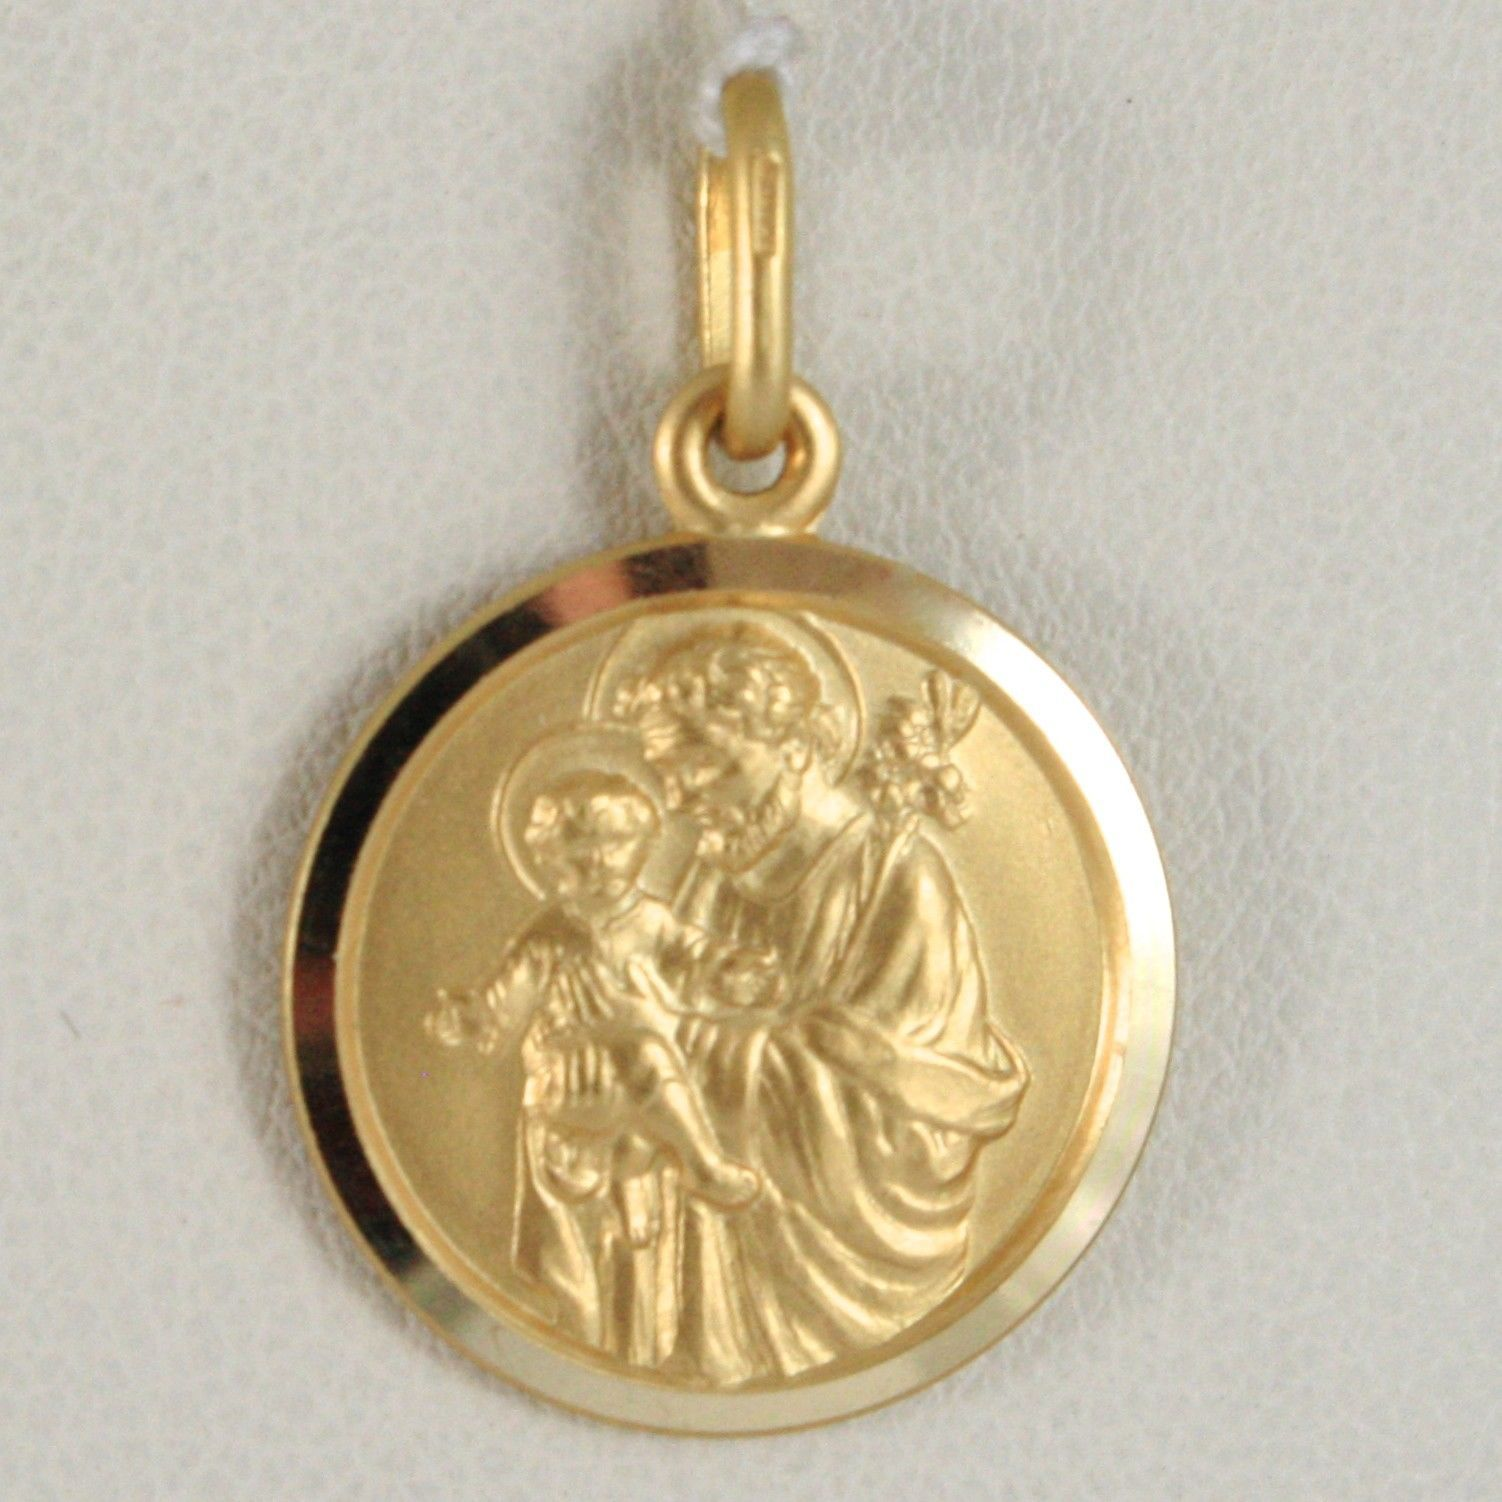 SOLID 18K YELLOW GOLD ST SAINT JOSEPH 17 MM MEDAL WITH JESUS, MADE IN ITALY